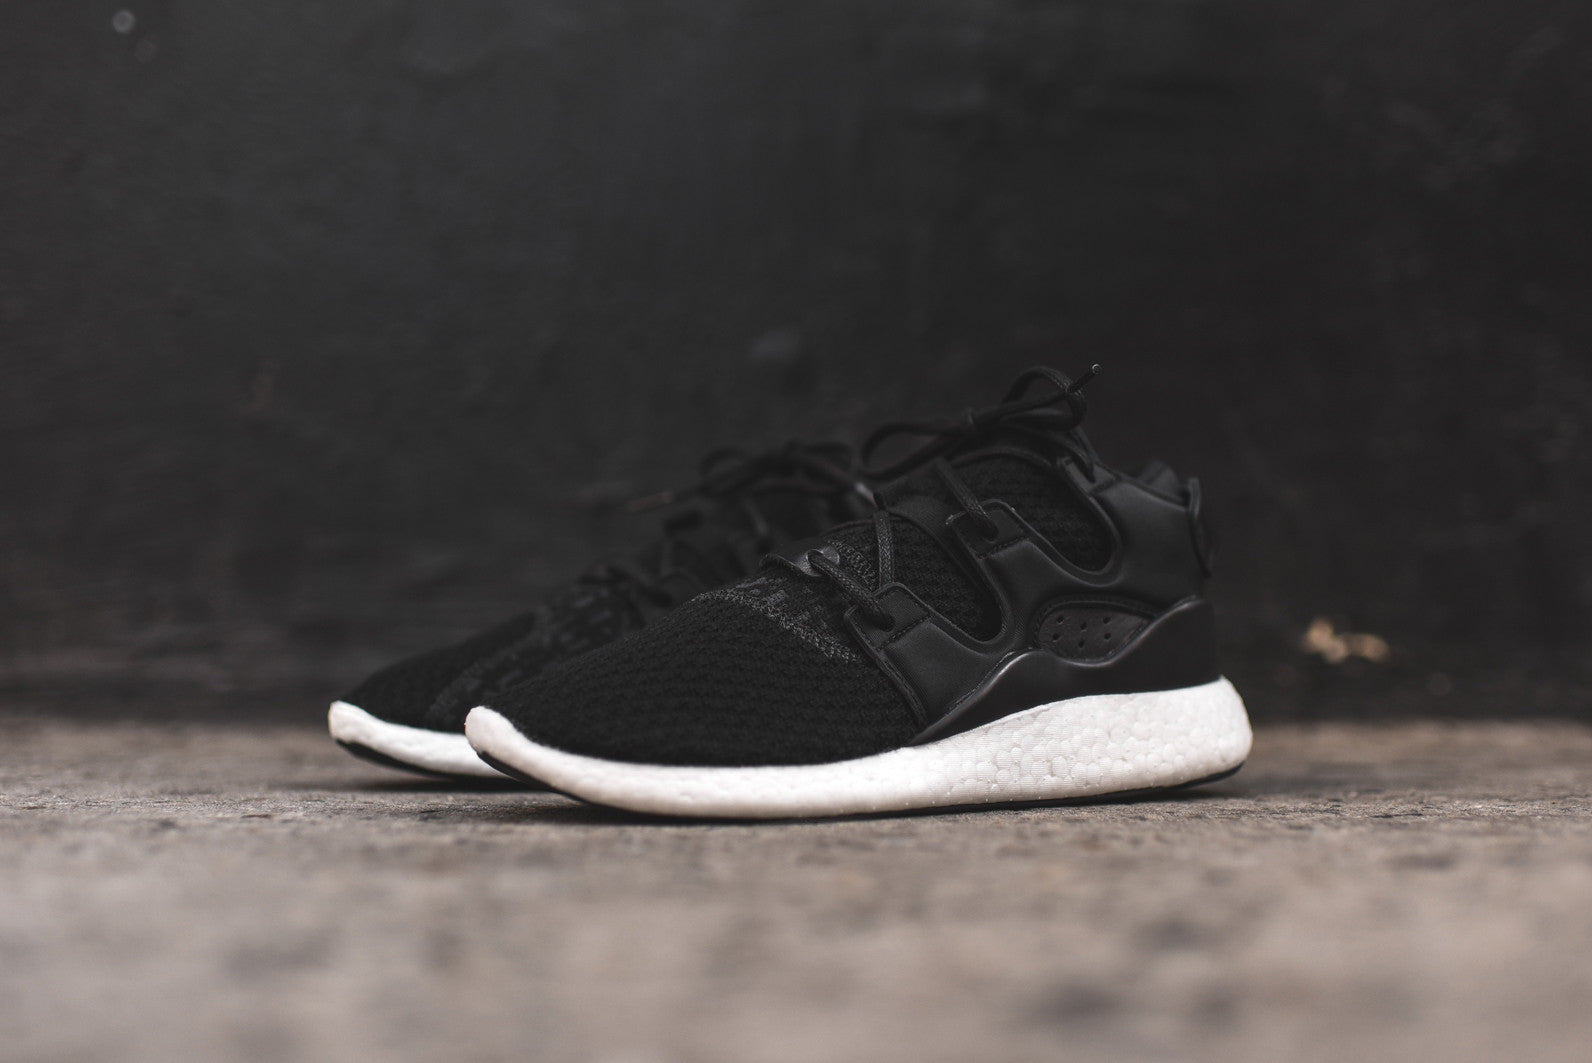 Cheap Adidas EQT Black Shoes Sale Outlet 2017